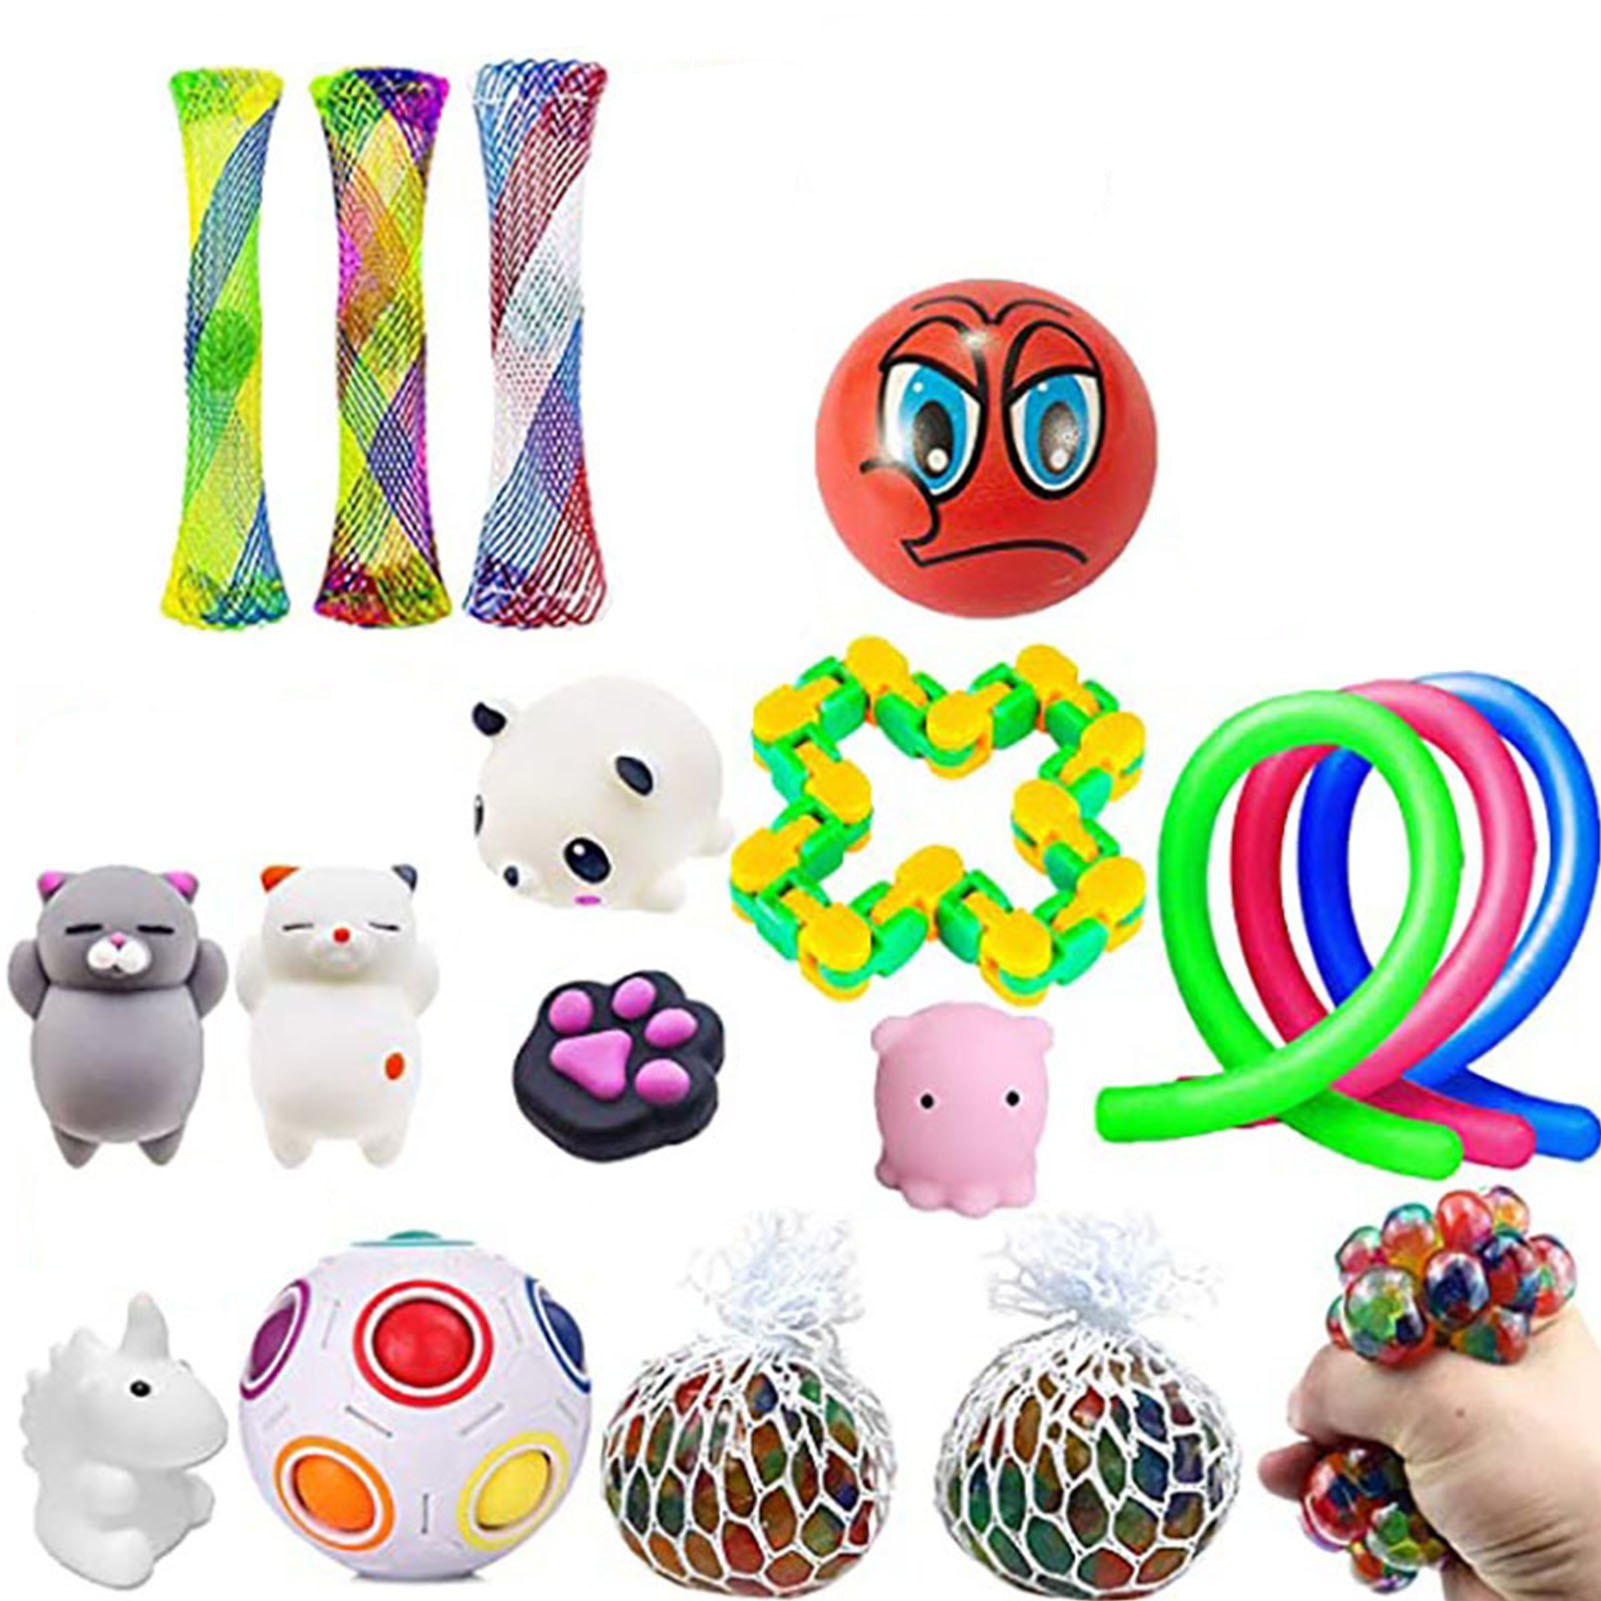 New Decompression Sensory Fidget Toy Set Stress Relief Toy For Kids Adult Squeeze Toys For Kids Adults Autism Needs Fidget Toys enlarge